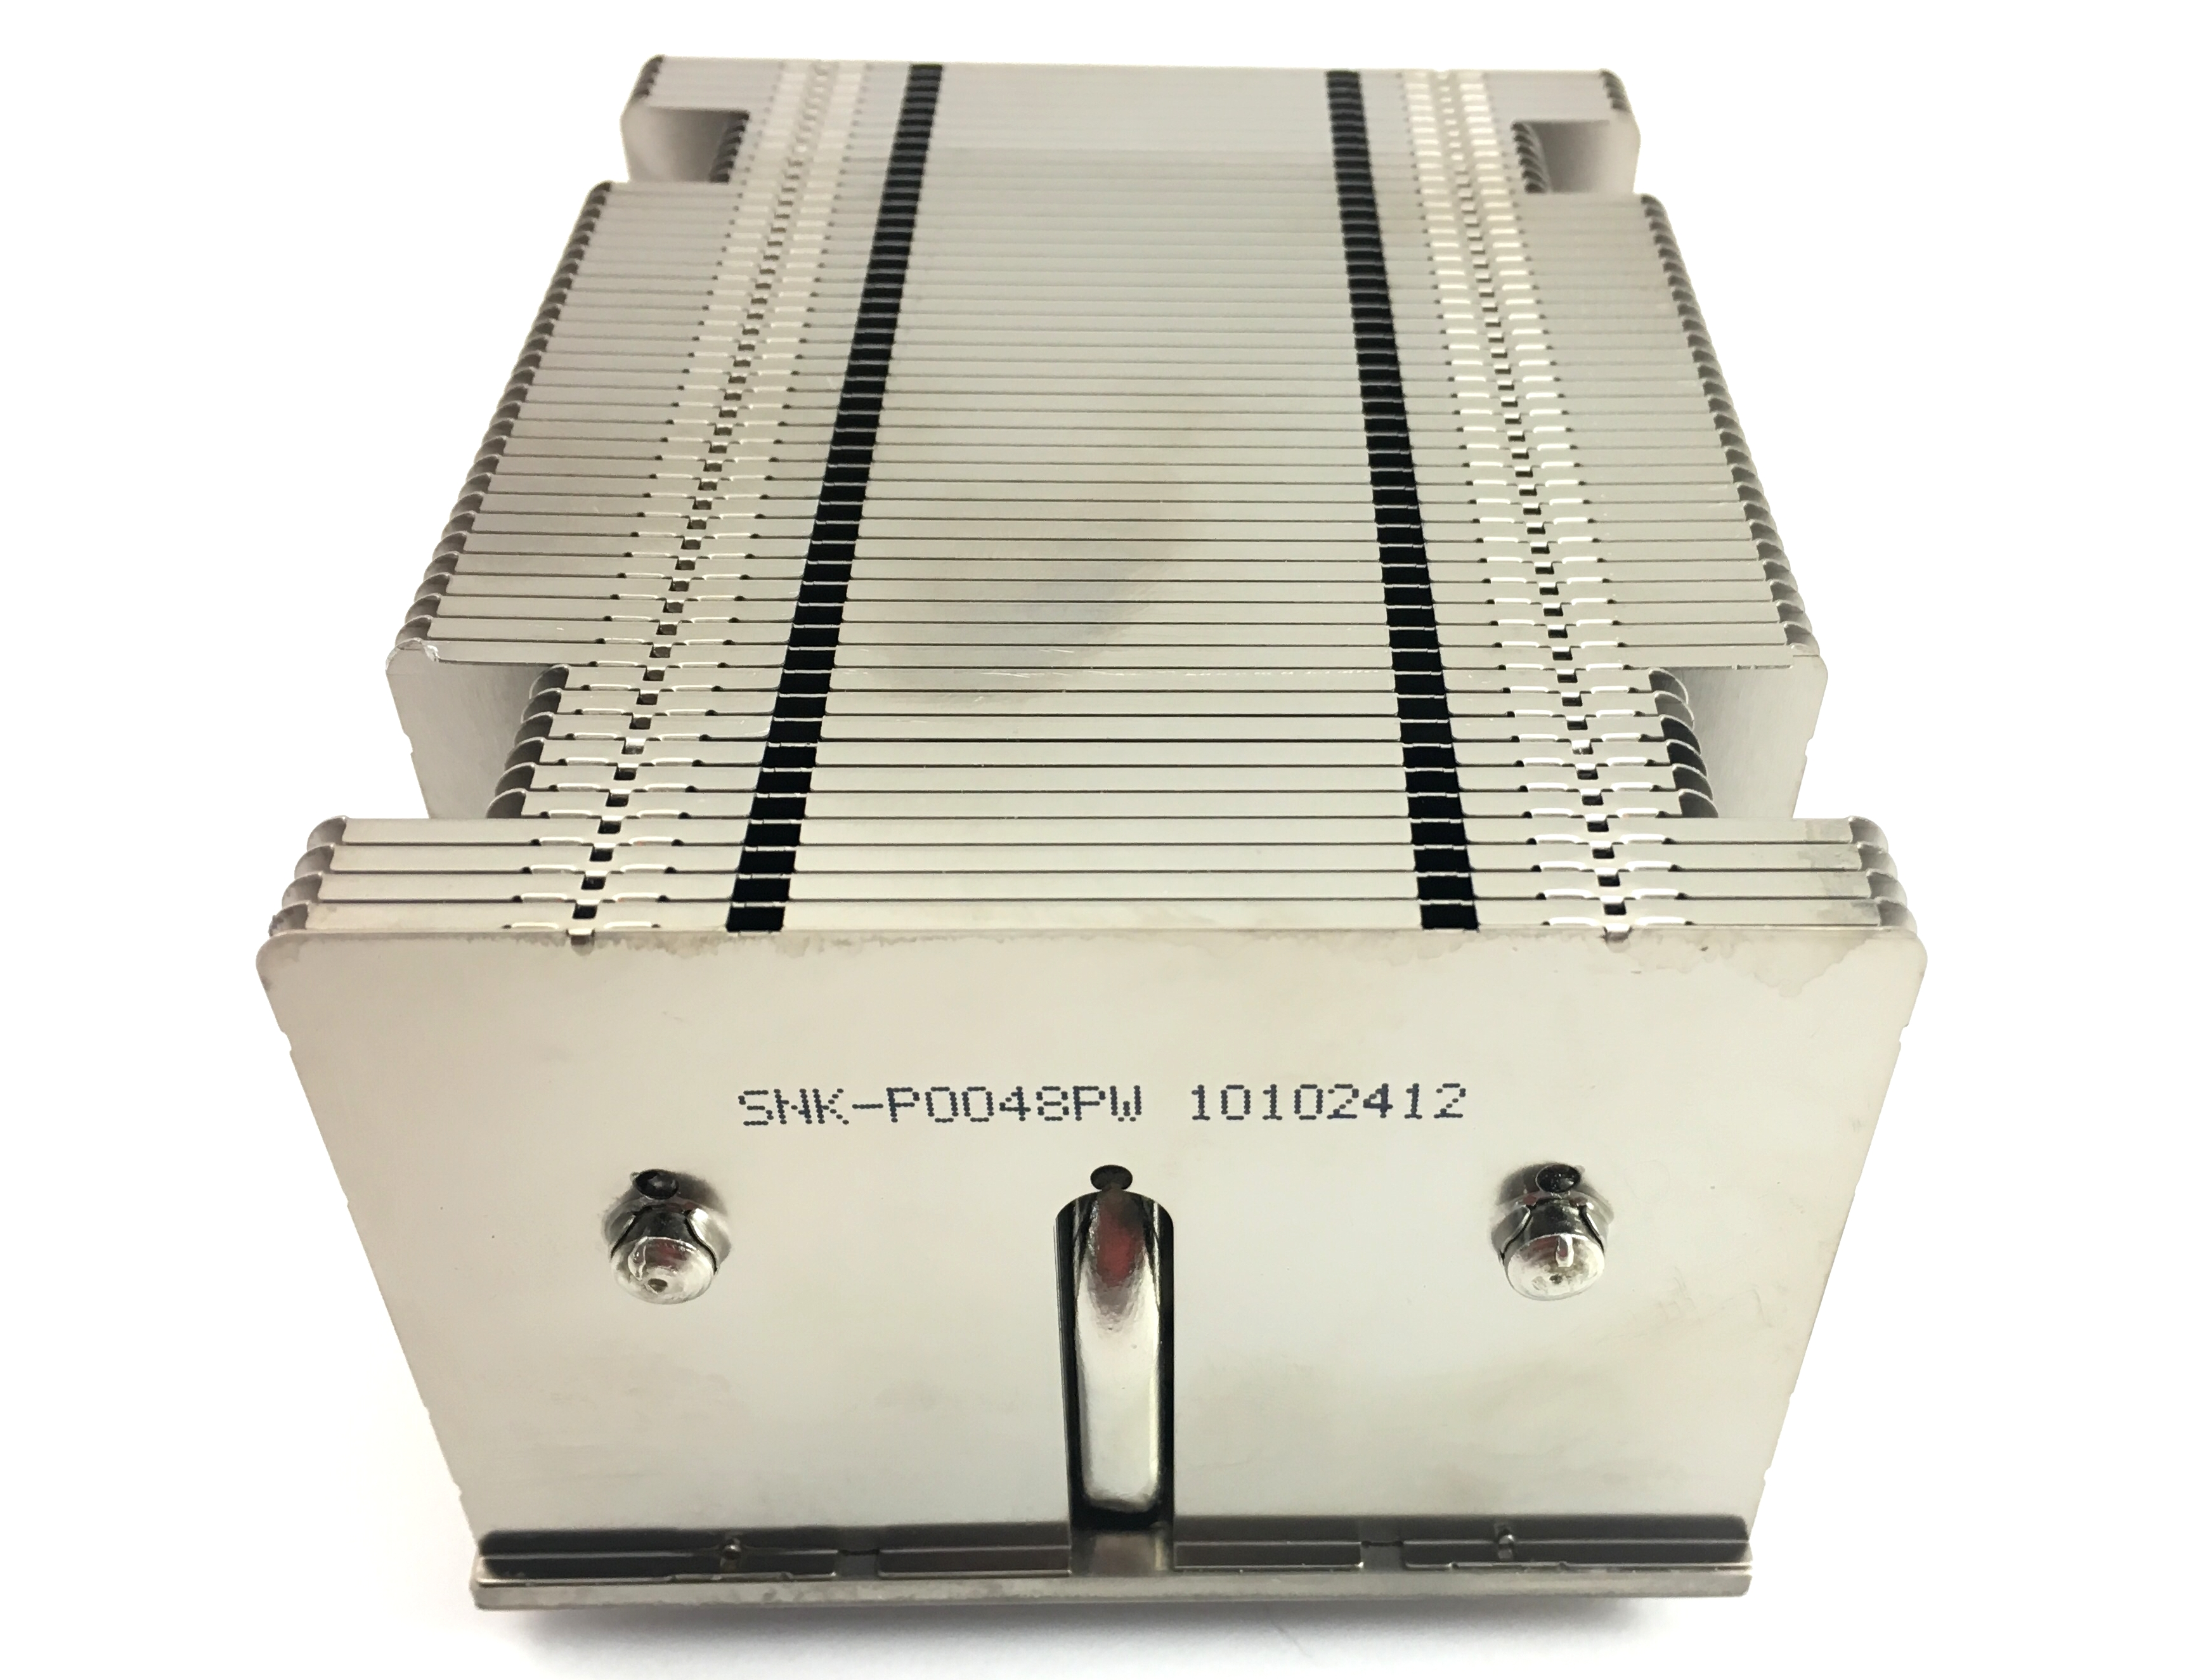 Supermicro 2U Passive CPU Heat Sinks For X9 Up/Dp/Mp Systems (SNK-P0048PW)